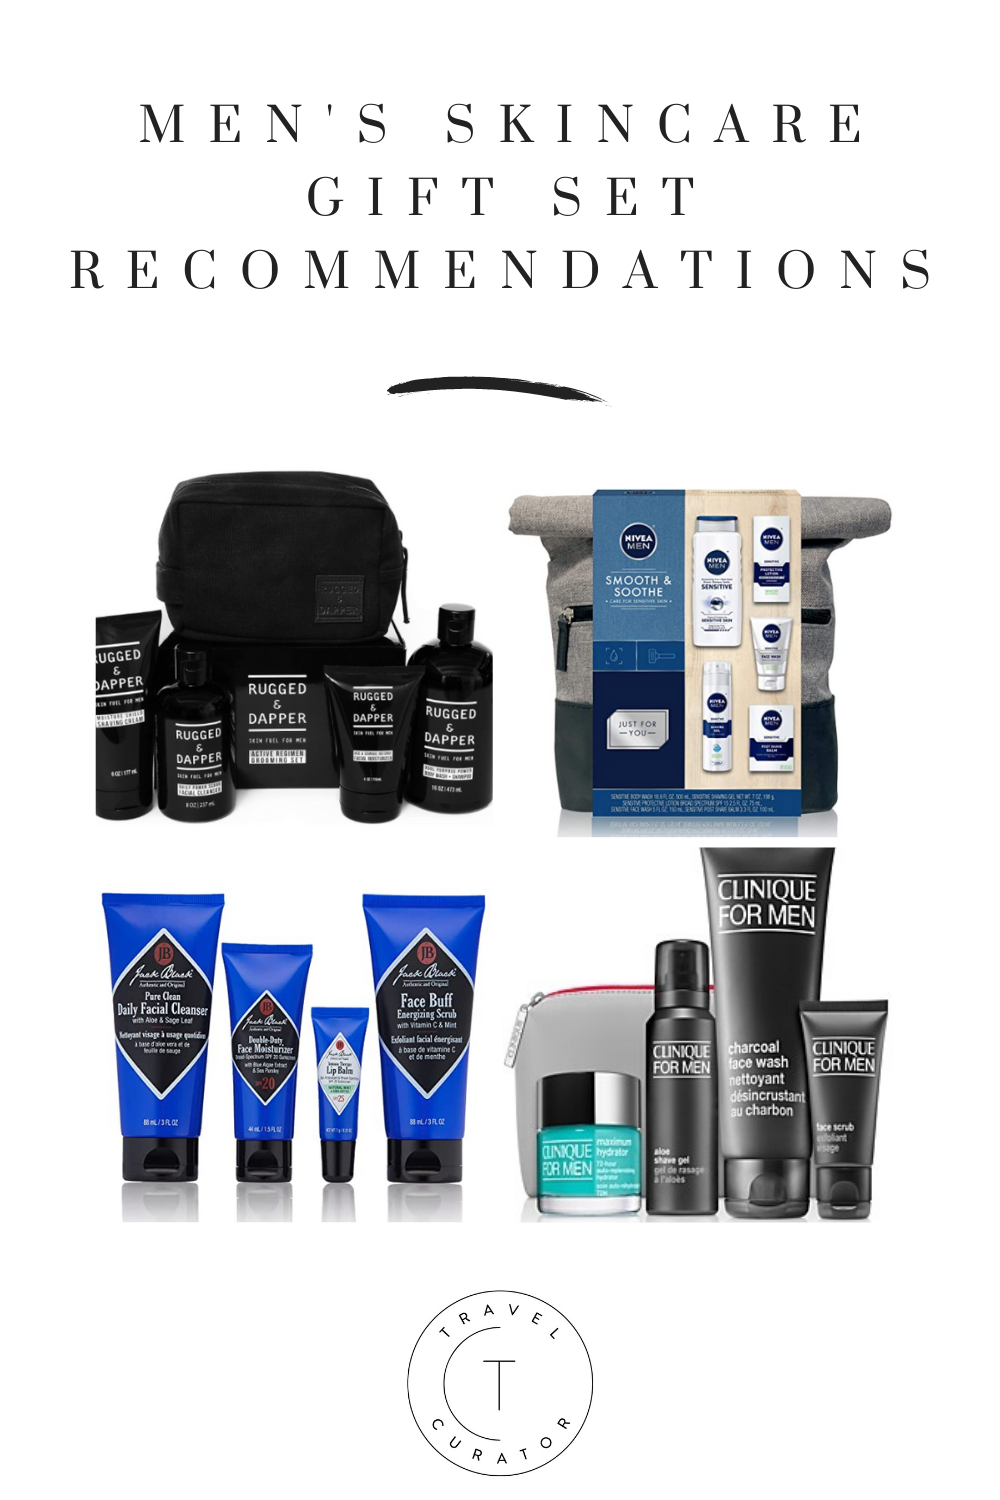 Men S Skincare Gift Set Recommendations Travel Curator In 2020 Skincare Gift Set Mens Skin Care Skin Care